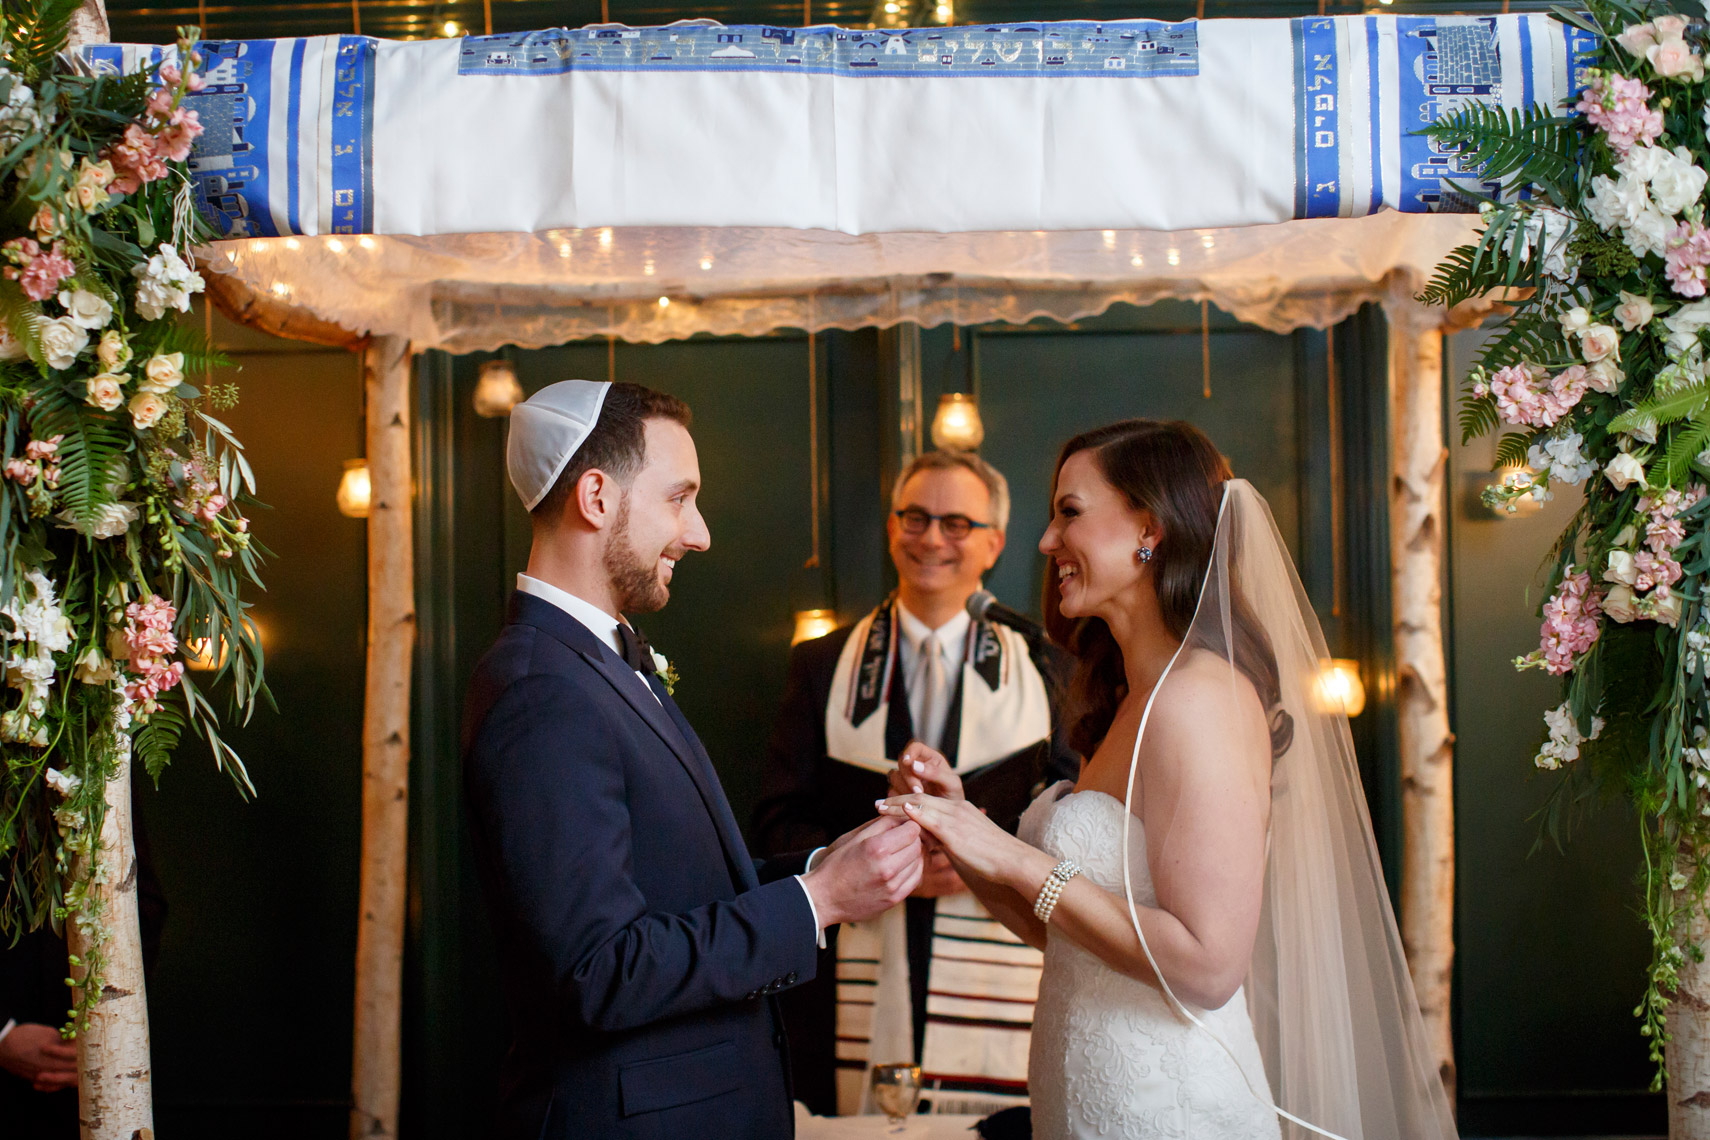 chuppah-Jewish-wedding-ceremony-Highlands_Country-Club-wedding-photographer